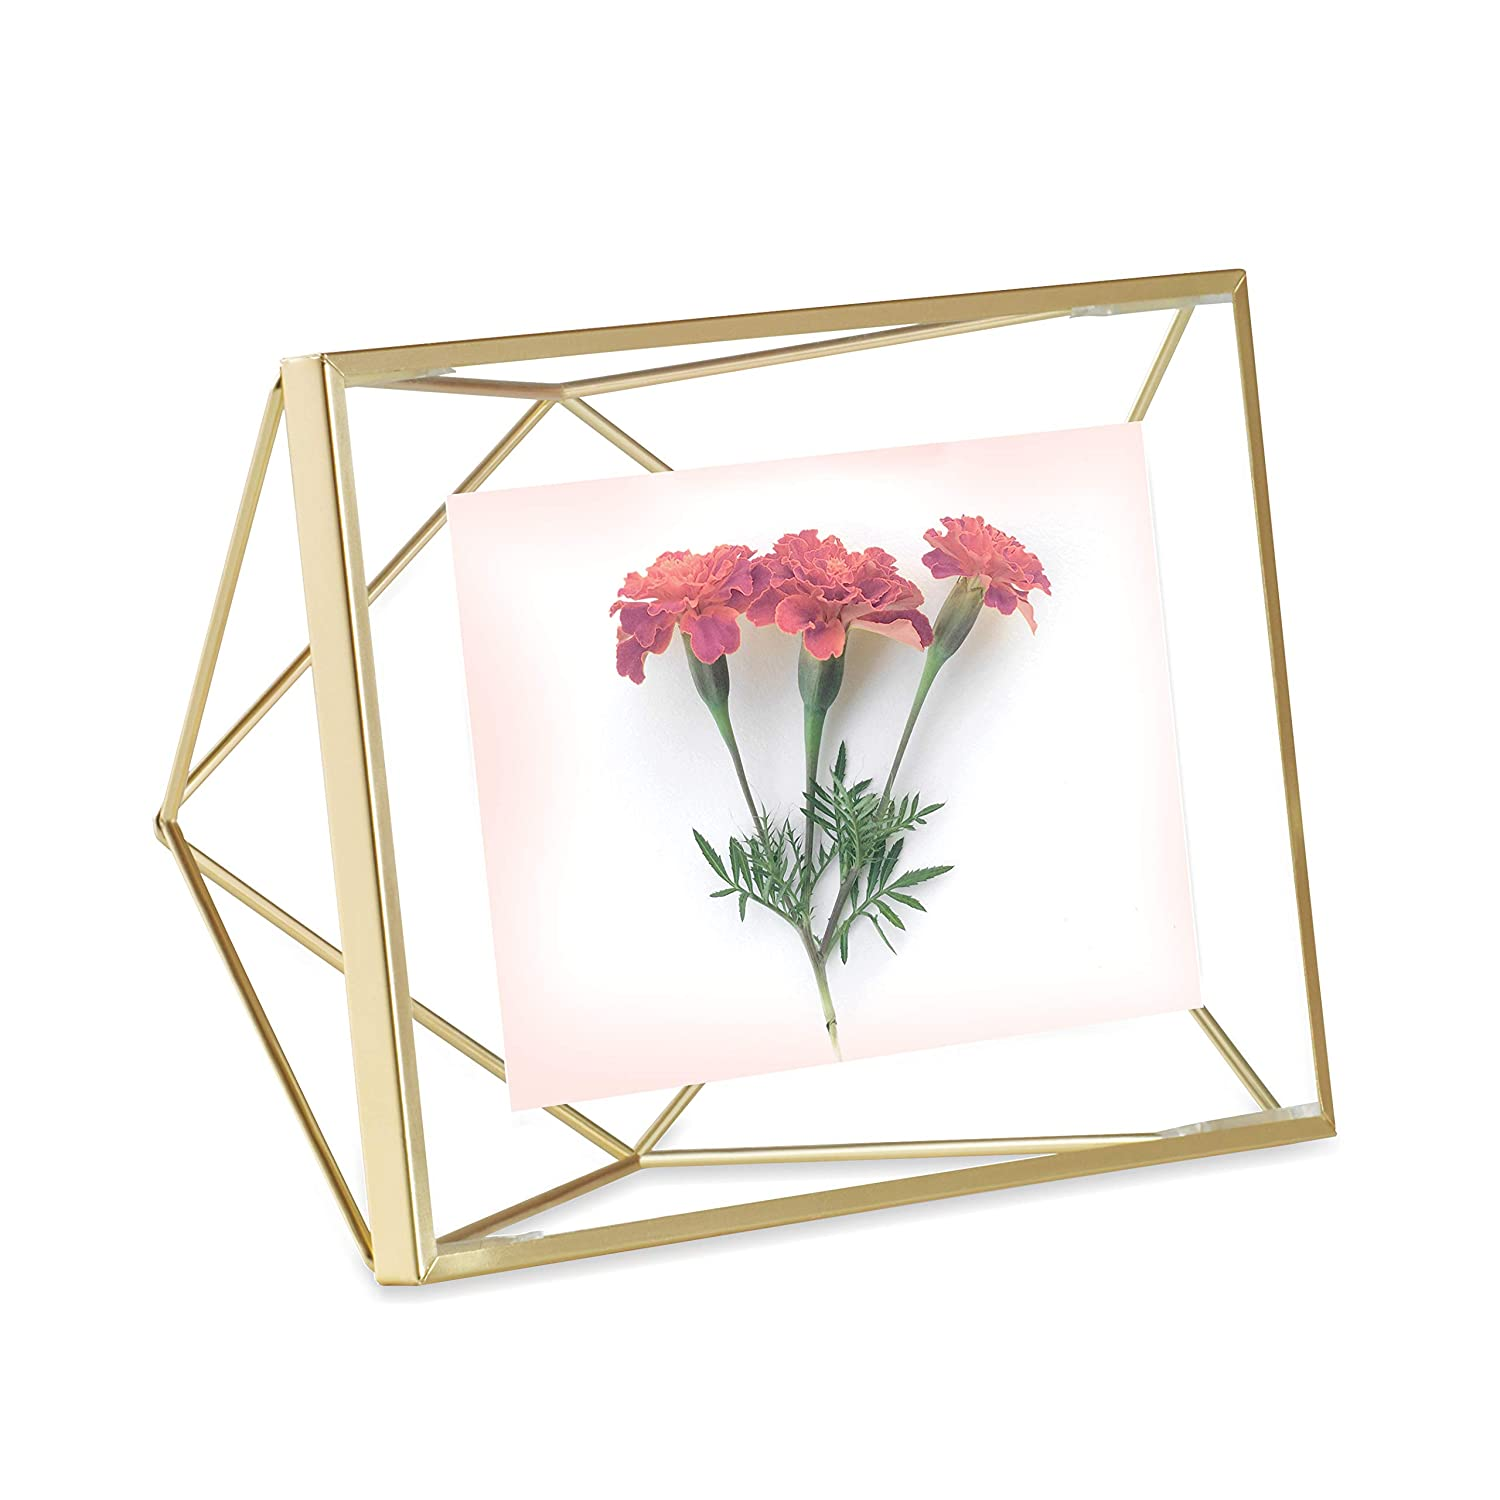 Umbra Prisma Picture Frame, 4x6 Photo Display for Desk or Wall, Brass